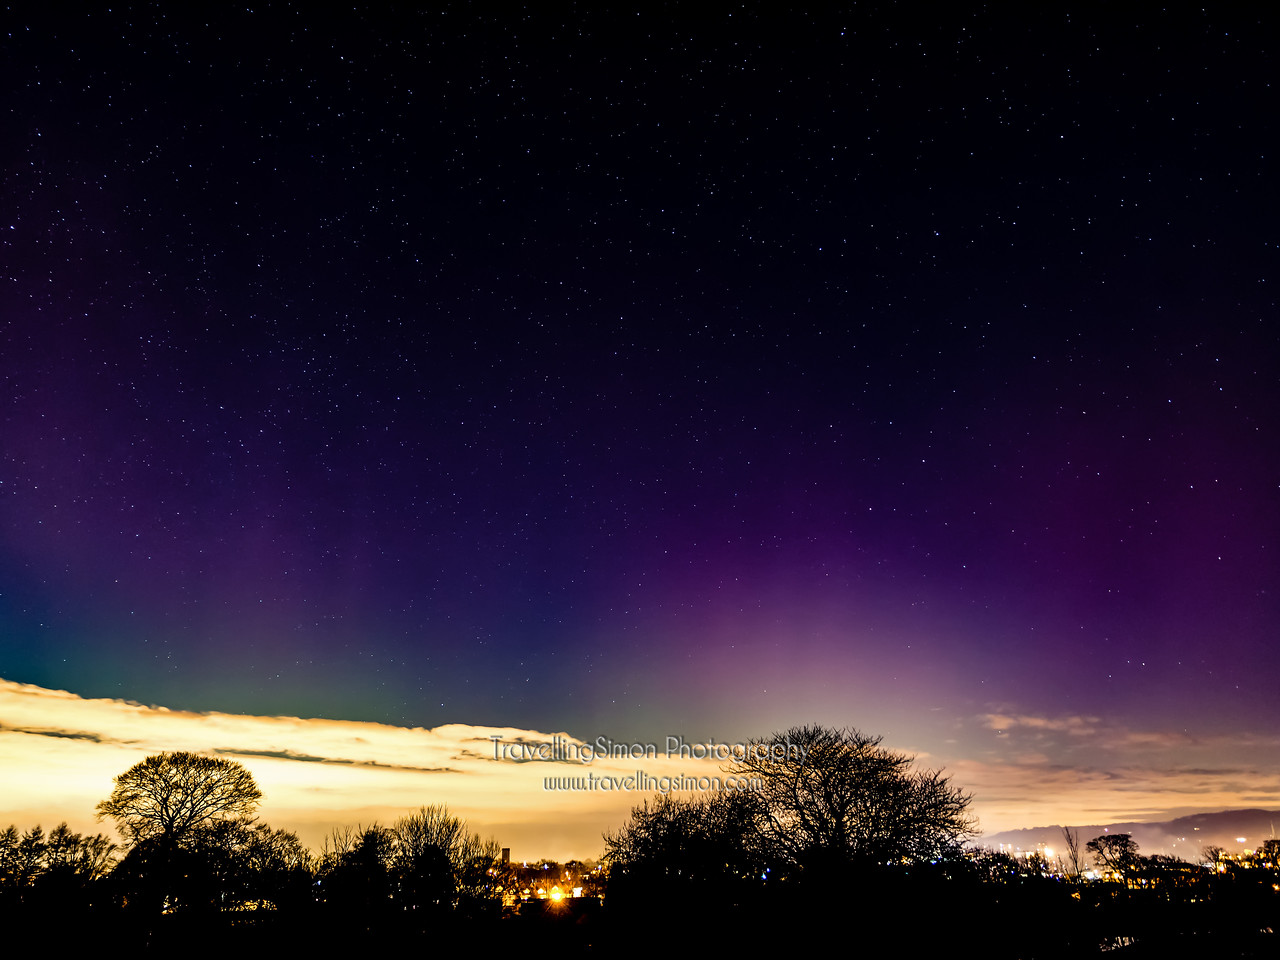 Aurora Borealis Over Macclesfield new image 4